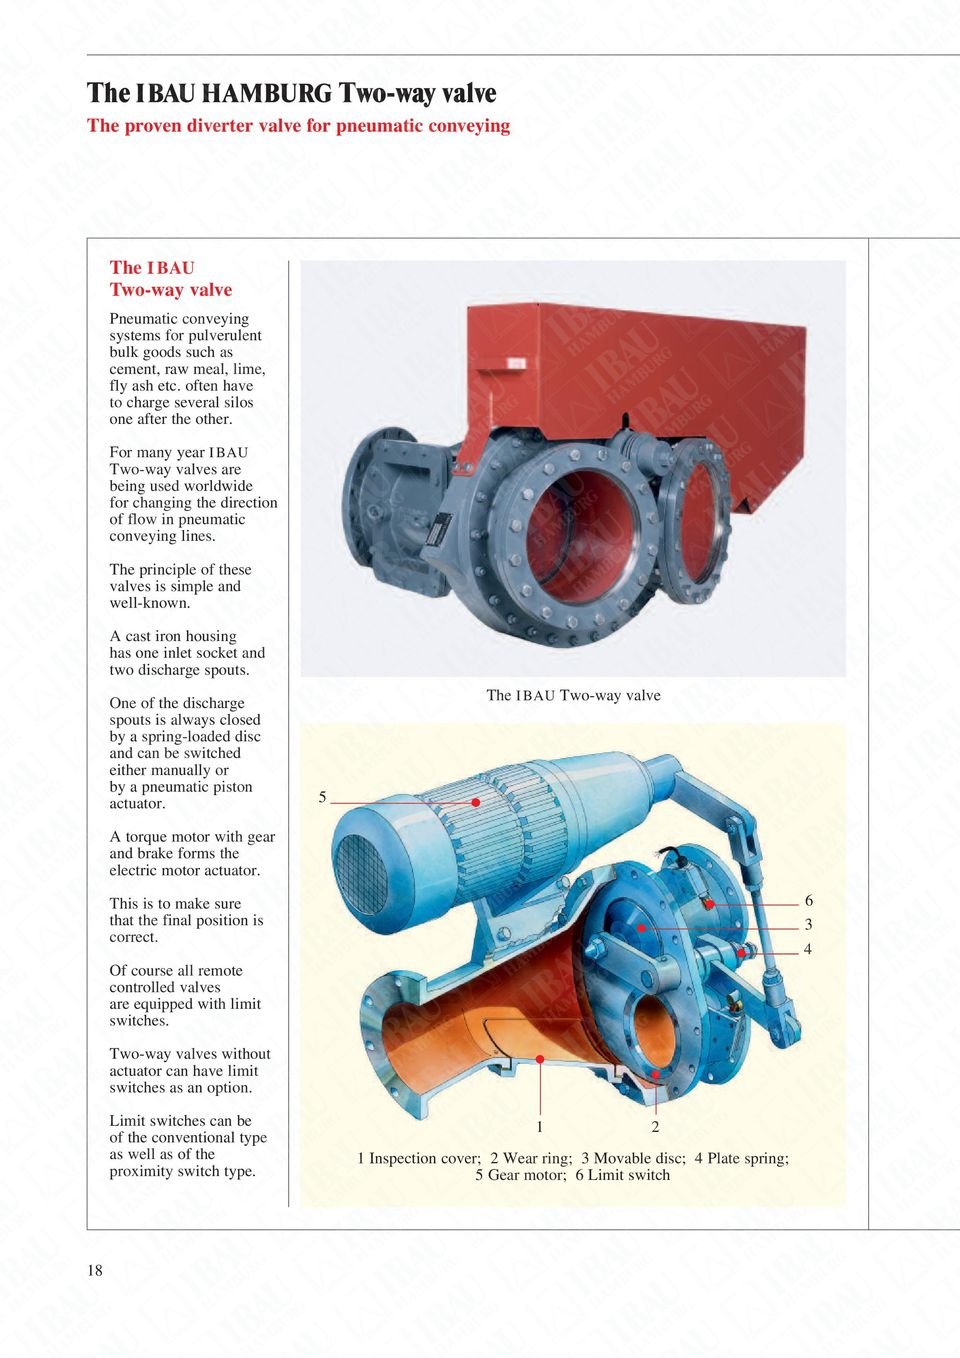 Ibau Hamburg A Member Of The Haver Group Information I Bau 3 Way Switch Always On Principle These Valves Is Simple And Well Known Cast Iron Housing